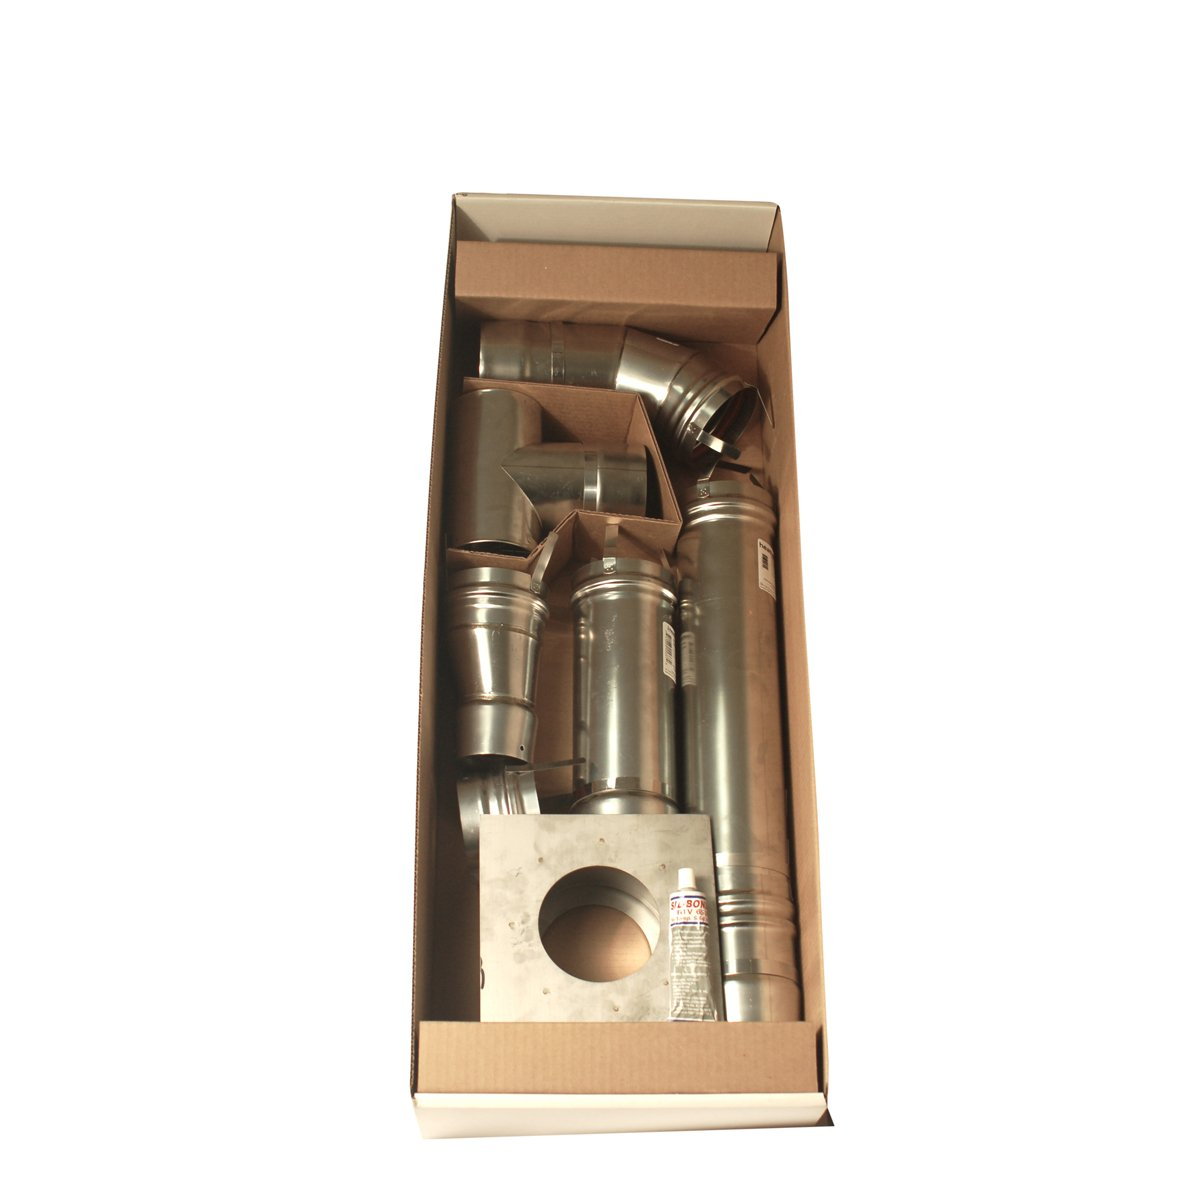 Mr. Heater 4 inch Stainless Steel Horizontal Vent Kit for Big Maxx MHU50 and MHU80 Unit Heaters